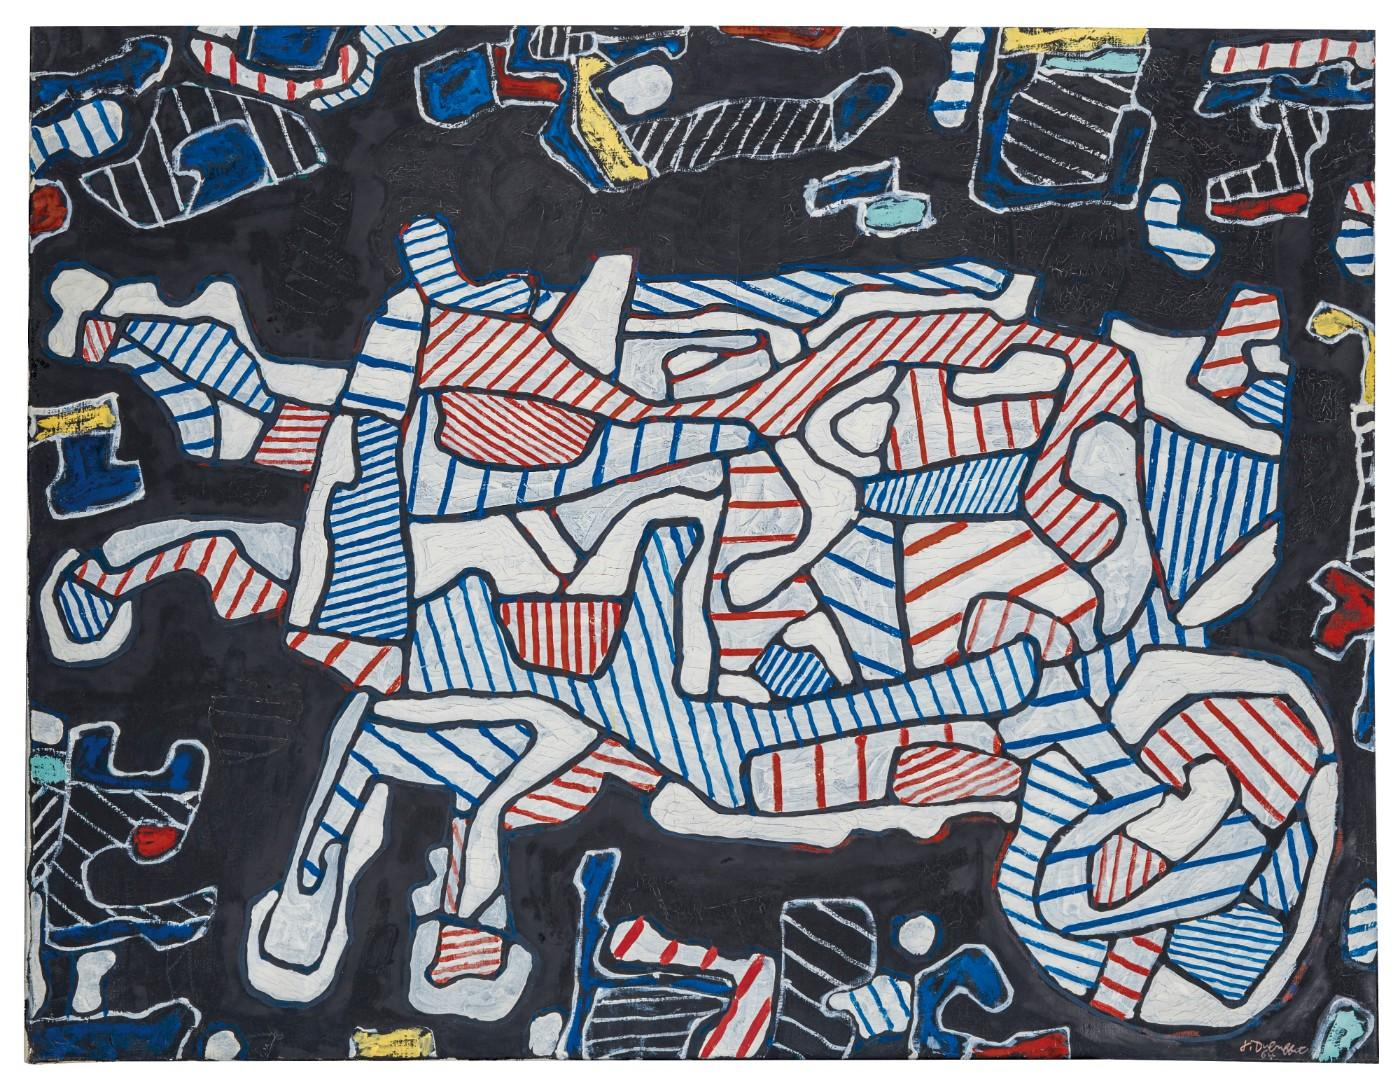 Jean Dubuffet (1901-1985), La Brouette (The Wheelbarrow), signed and dated 'J. Dubuffet 64' (lower right), oil on canvas